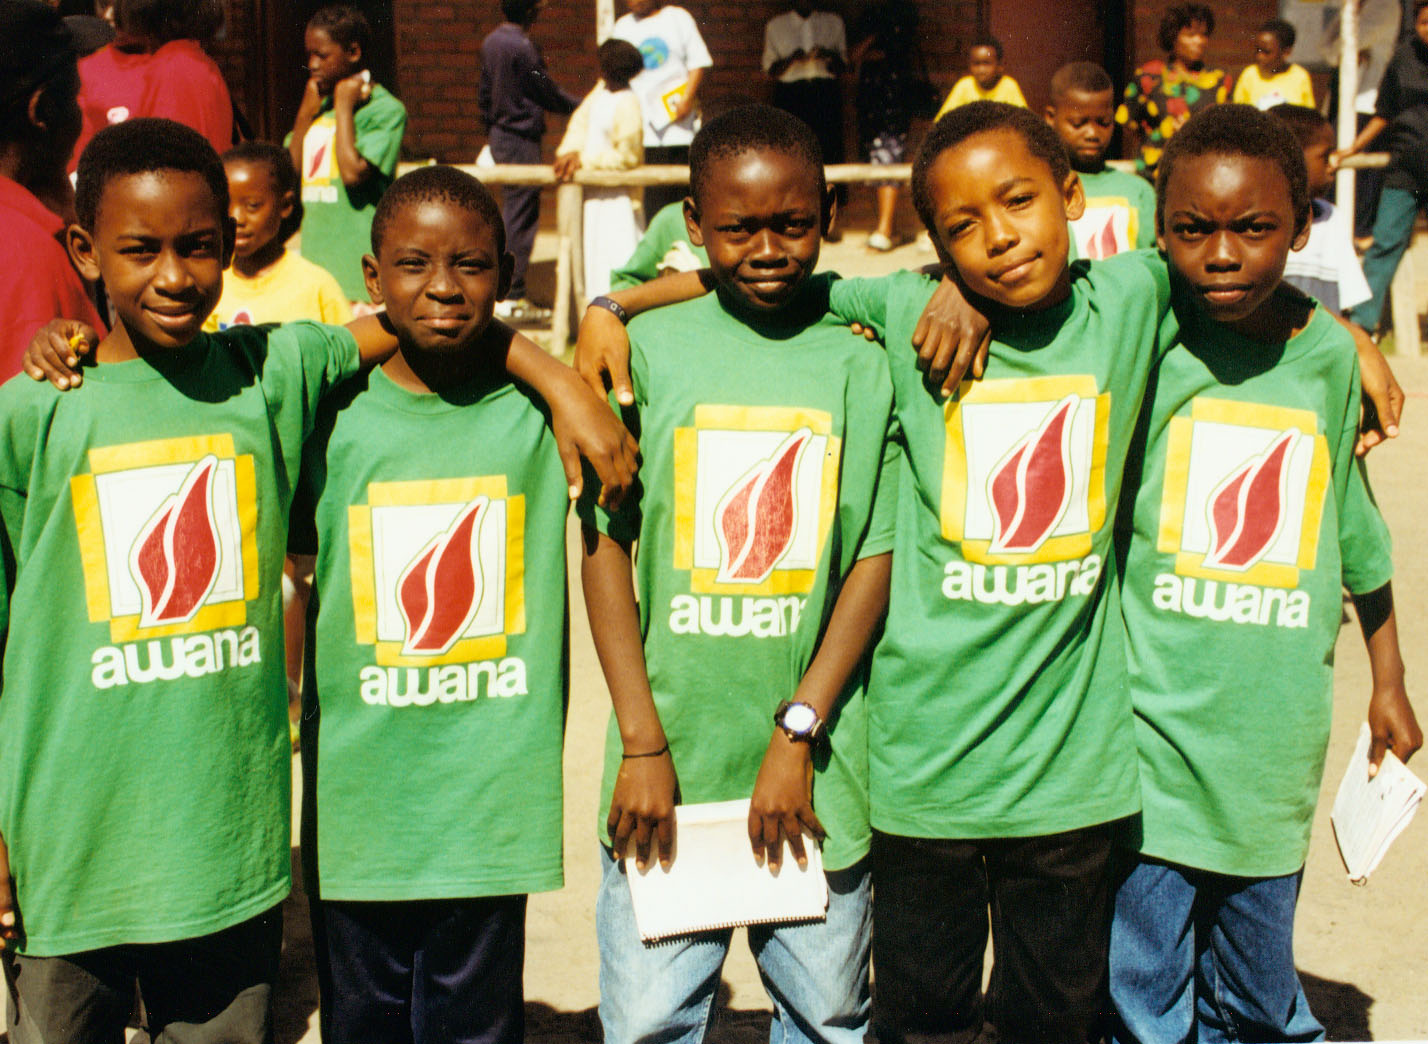 Five Flame clubbers in Malawi